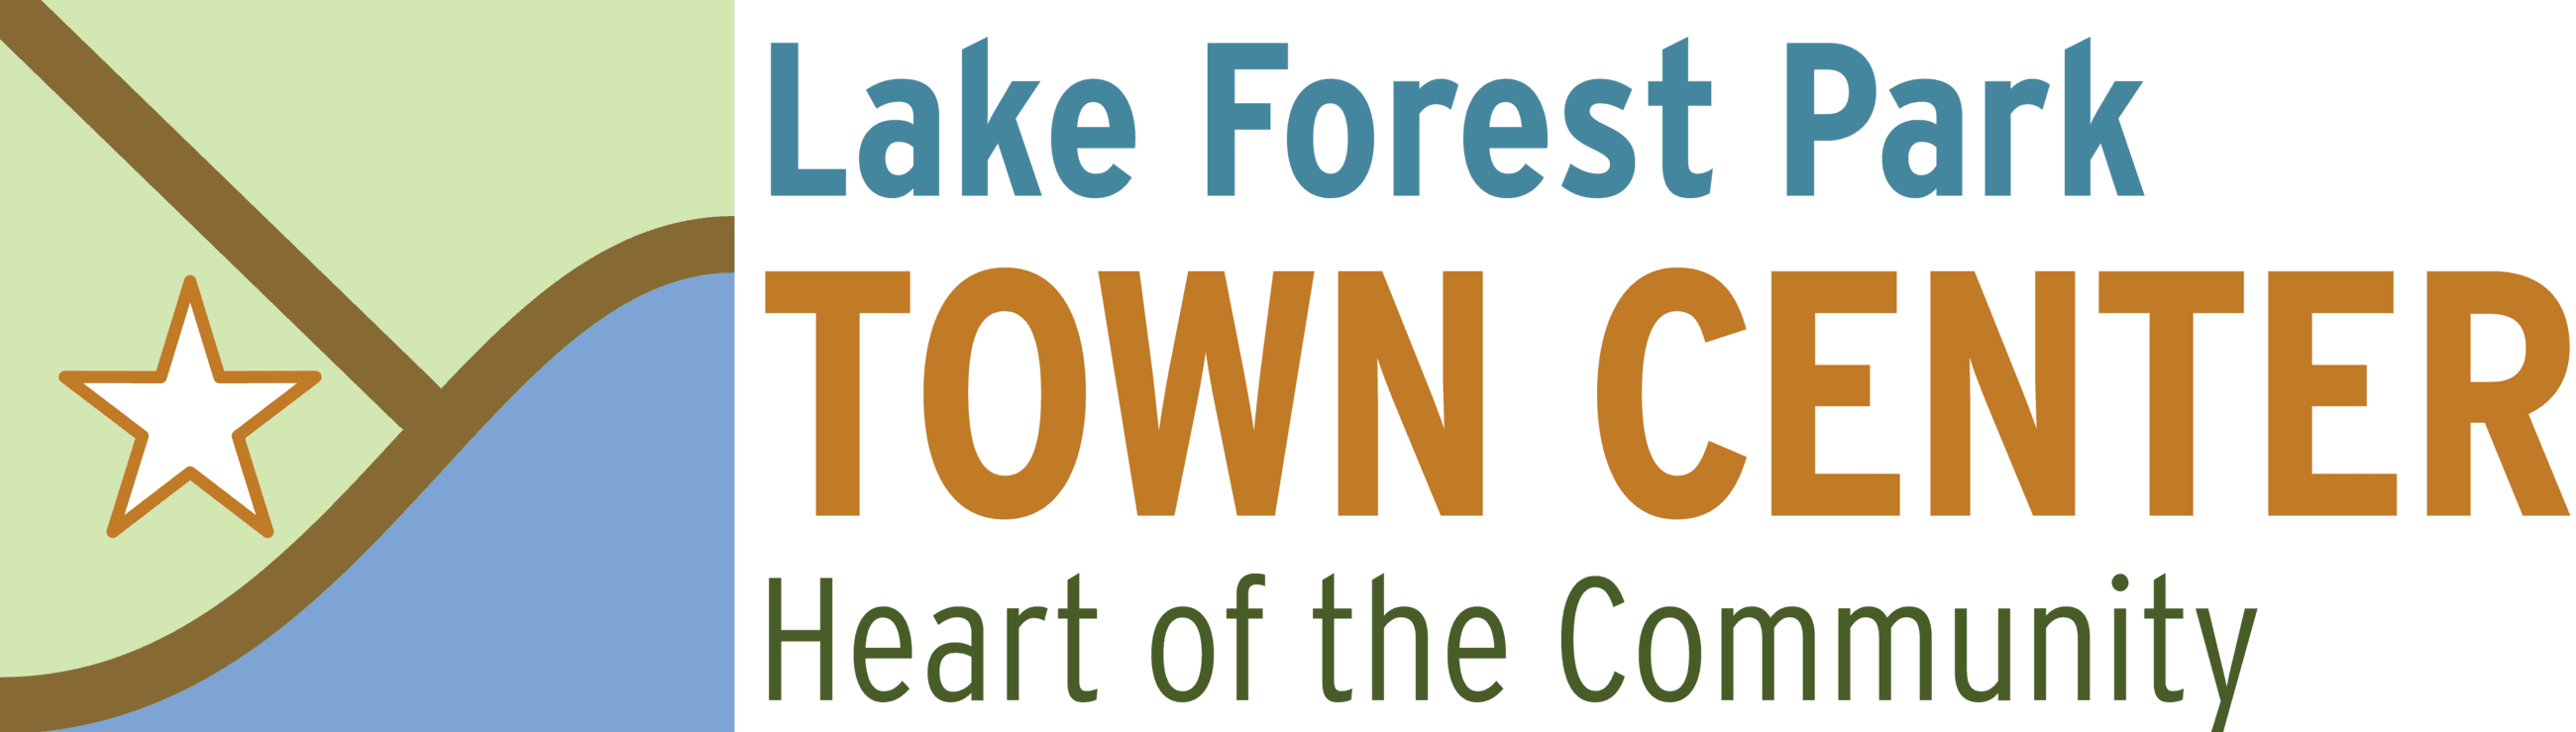 LFP Town Center logo